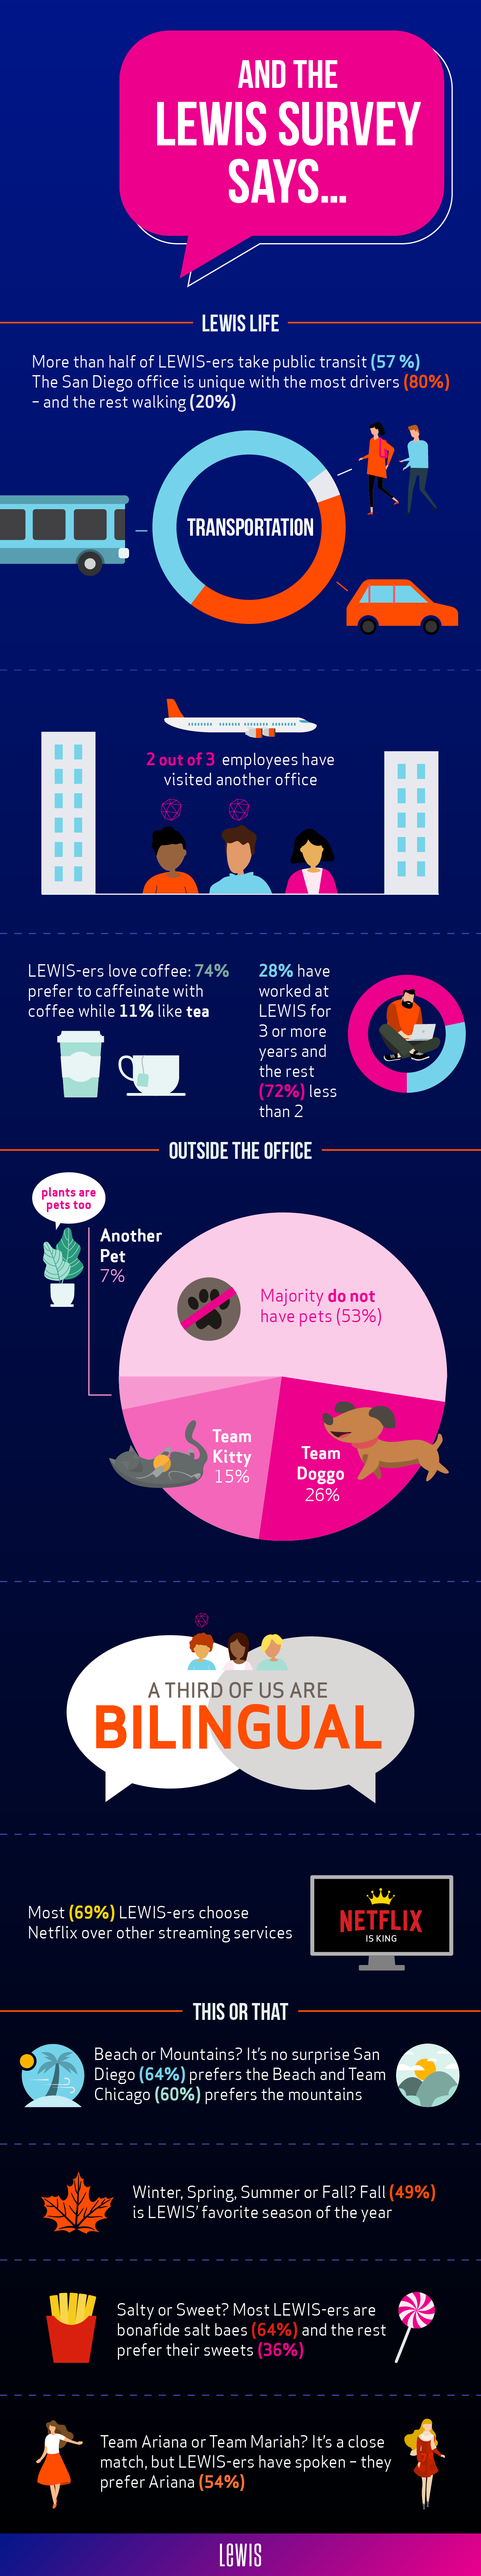 Infographic of LEWIS Survey